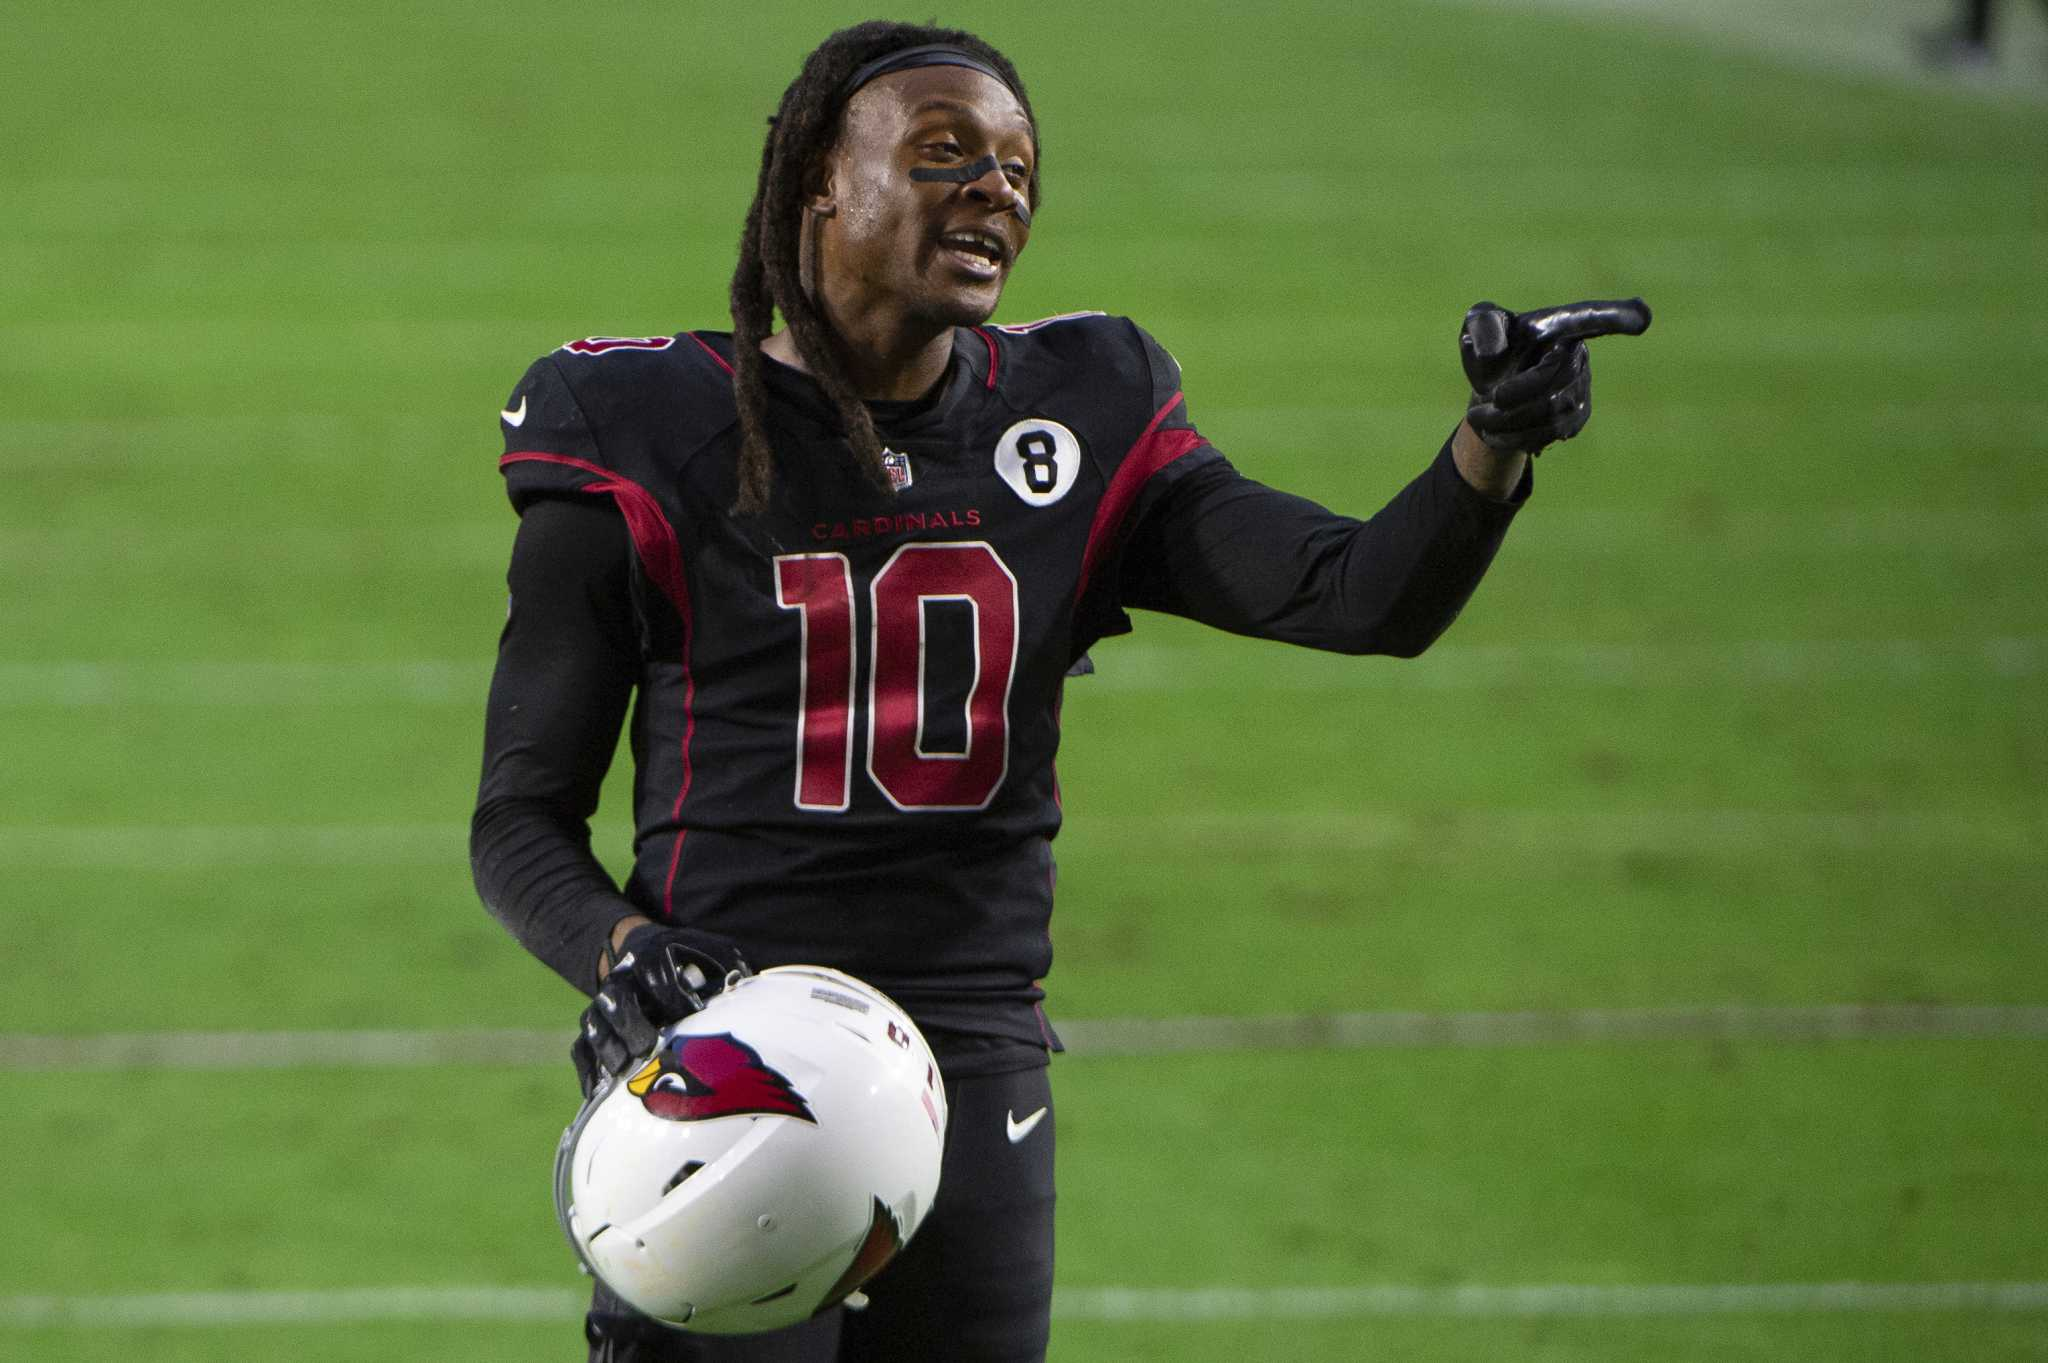 DeAndre Hopkins laughs at Fox's trolling of Texans on Instagram